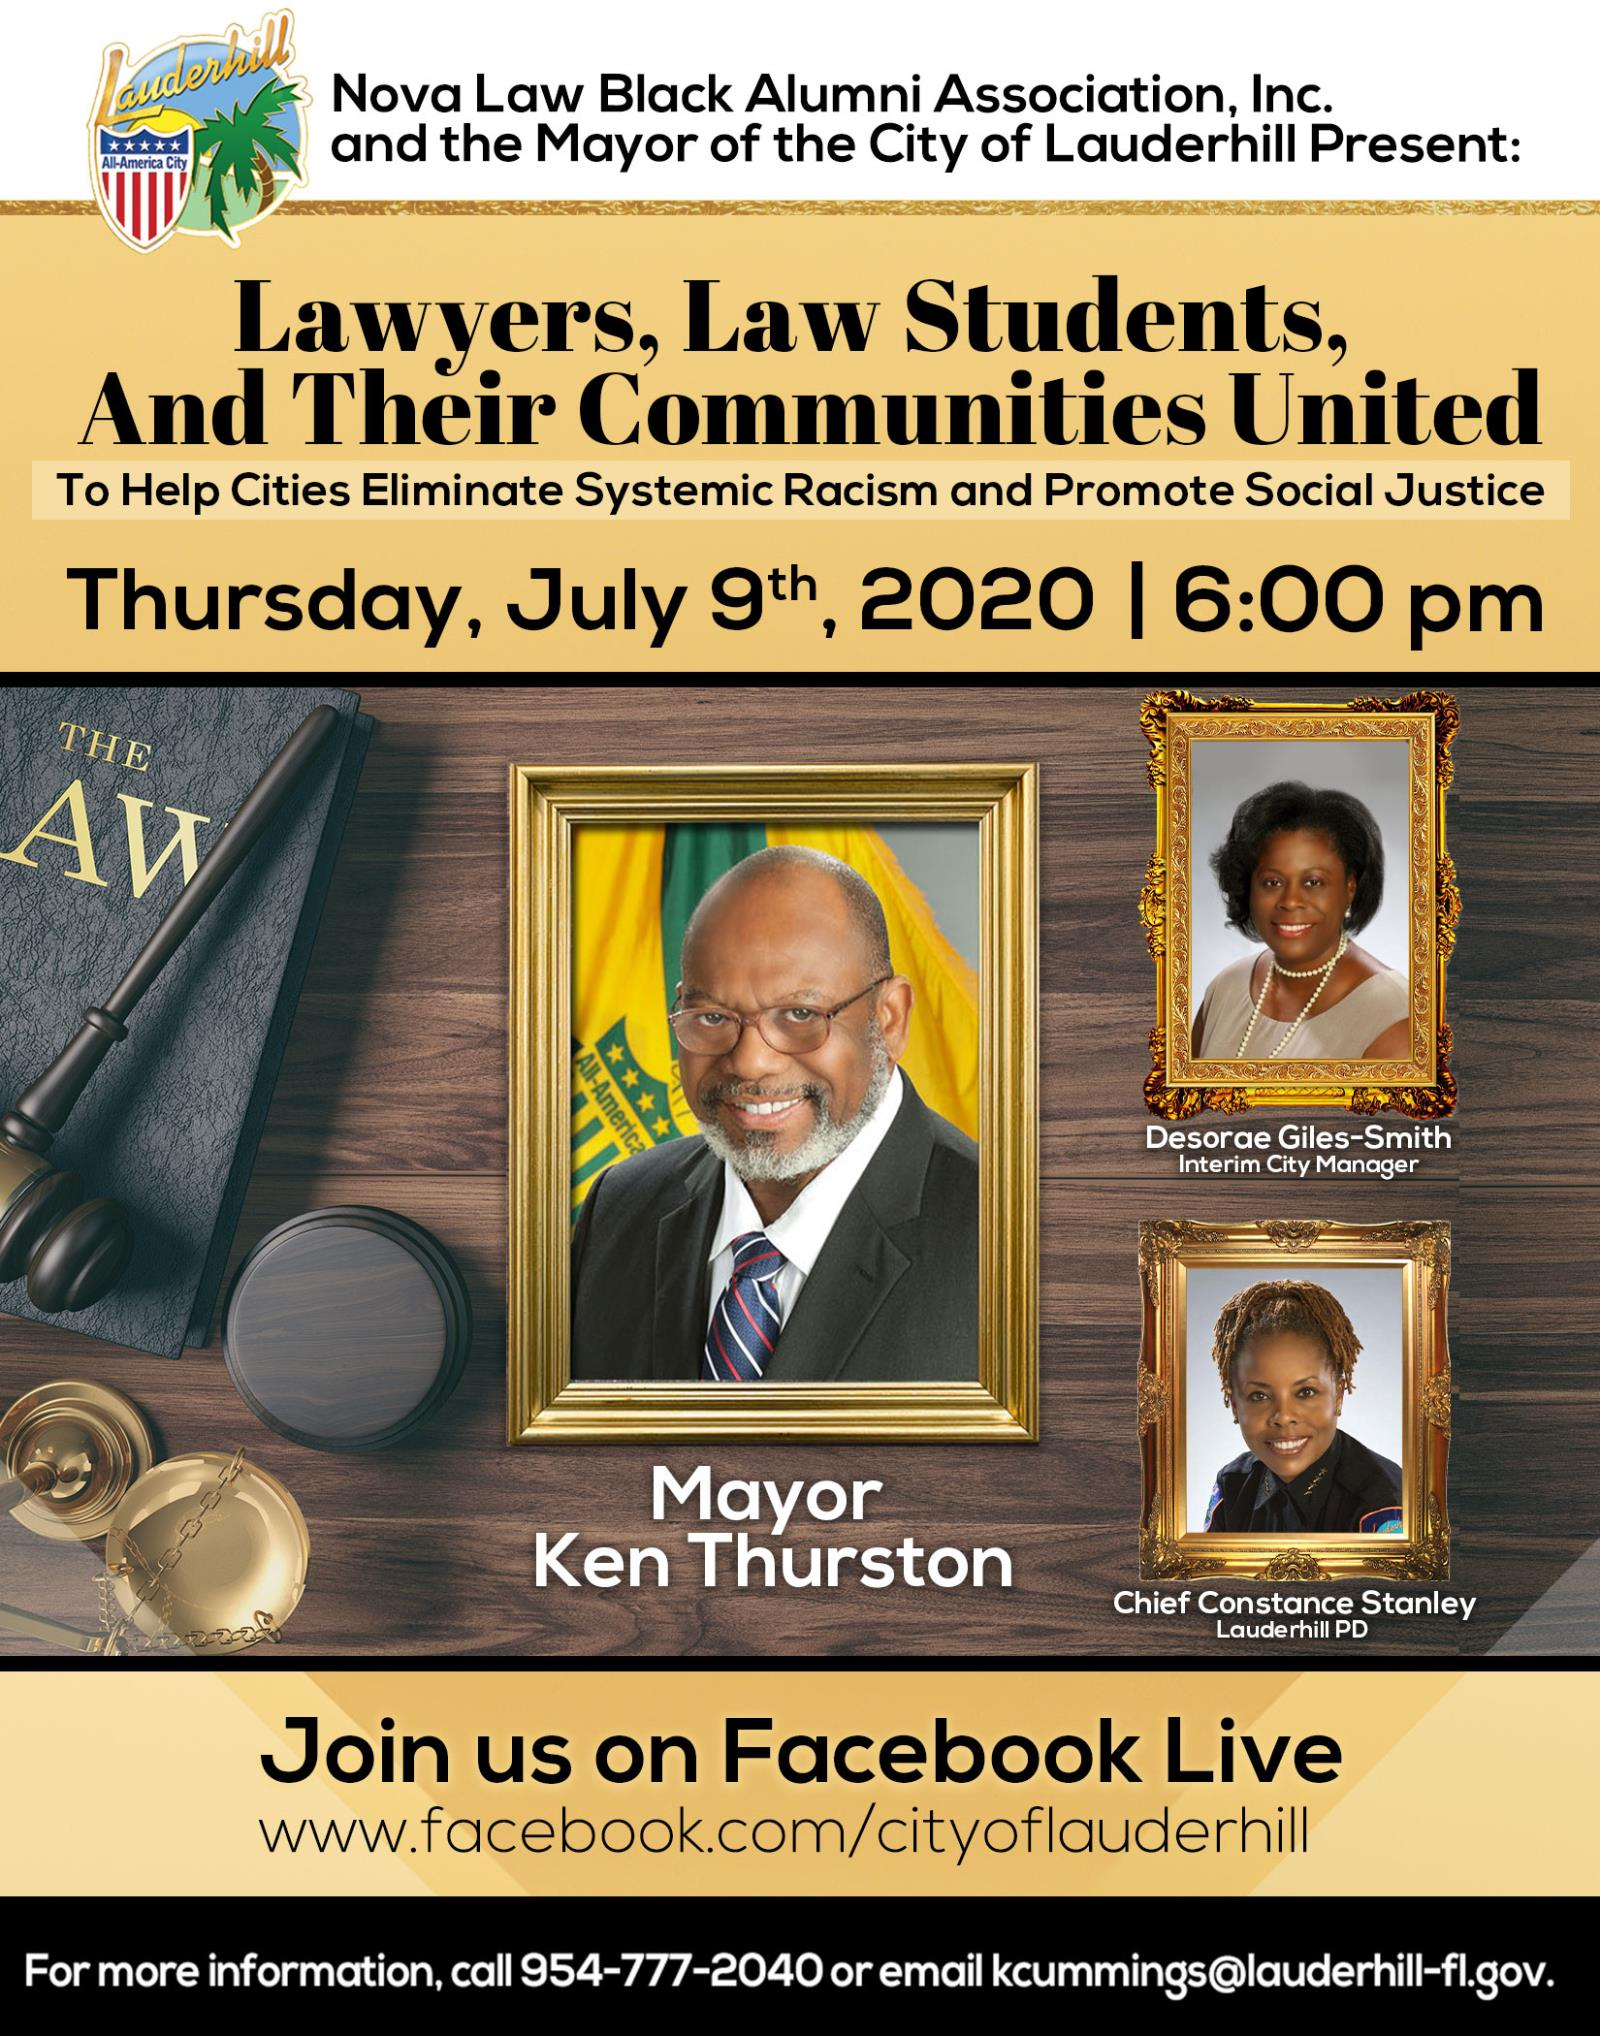 7-9-20 - Lawyers, Law Students, And Their Communities United